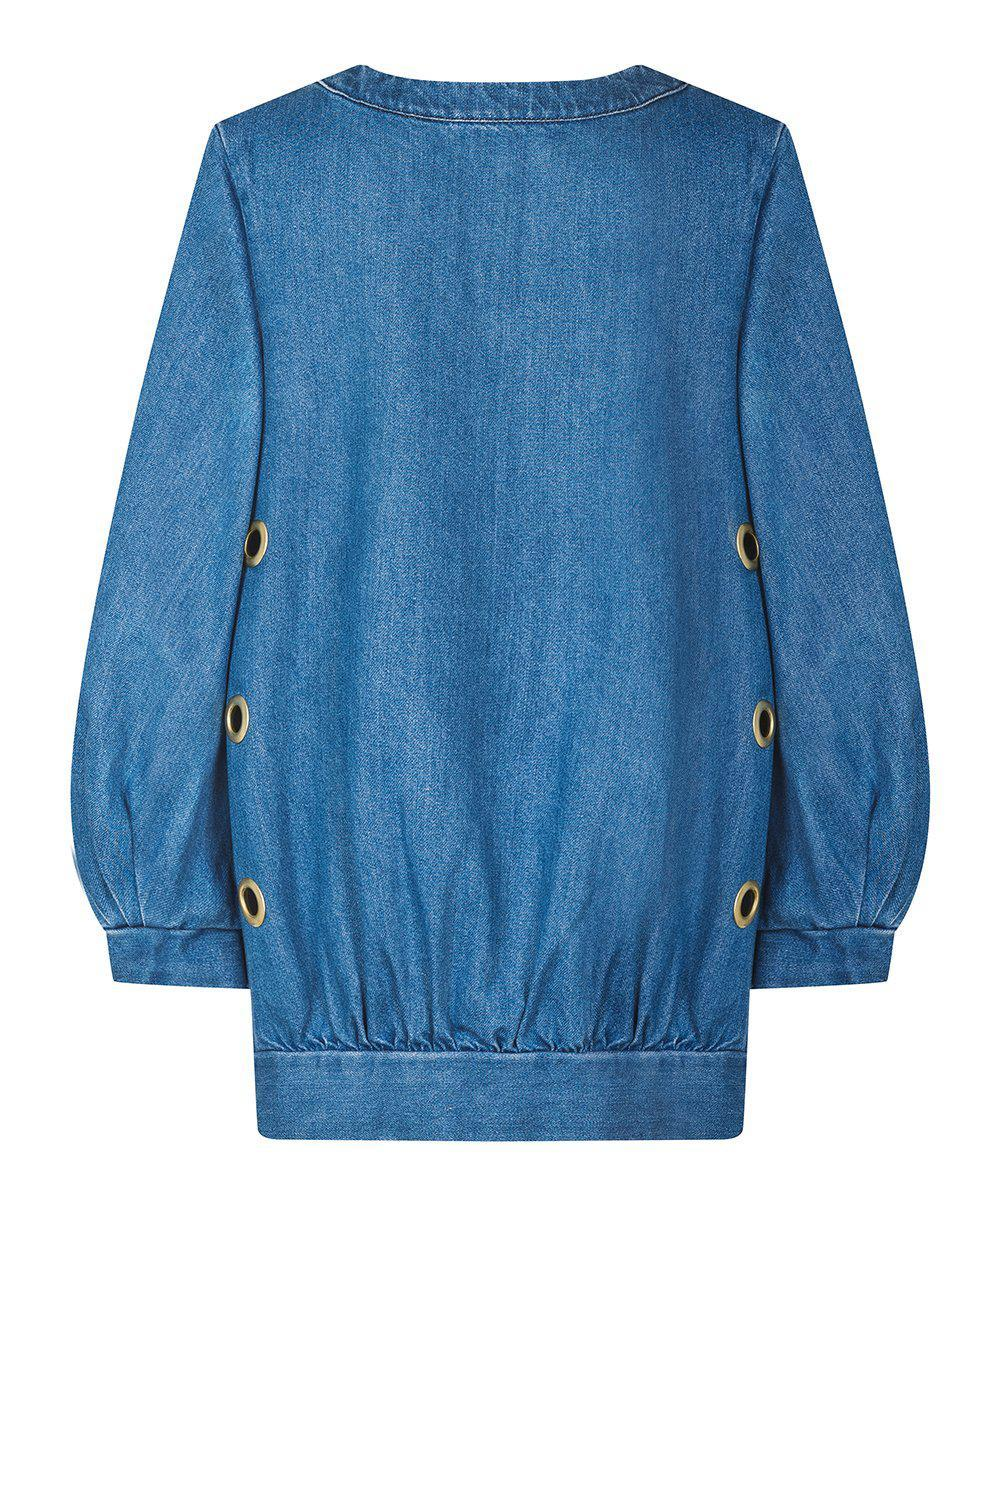 Lune sweatshirt in blue denim